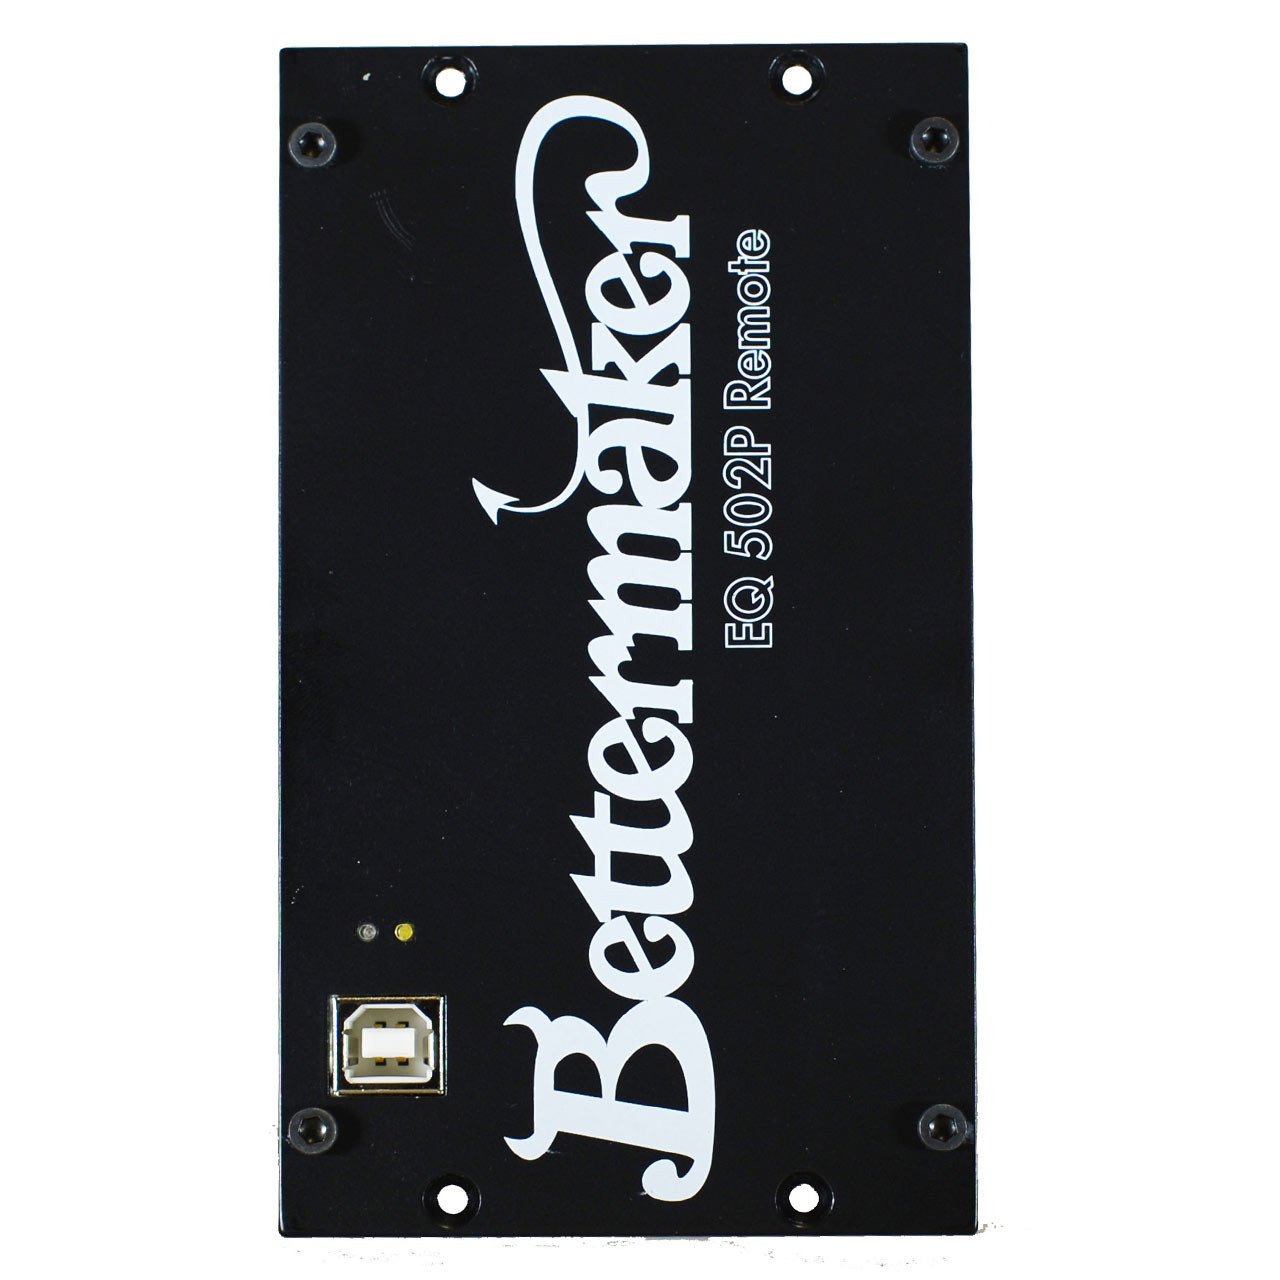 500 Series - Bettermaker EQ 502P Remote - Stereo Analog Passive Equaliser With Plugin Recall In 500 Format, Remote Version.